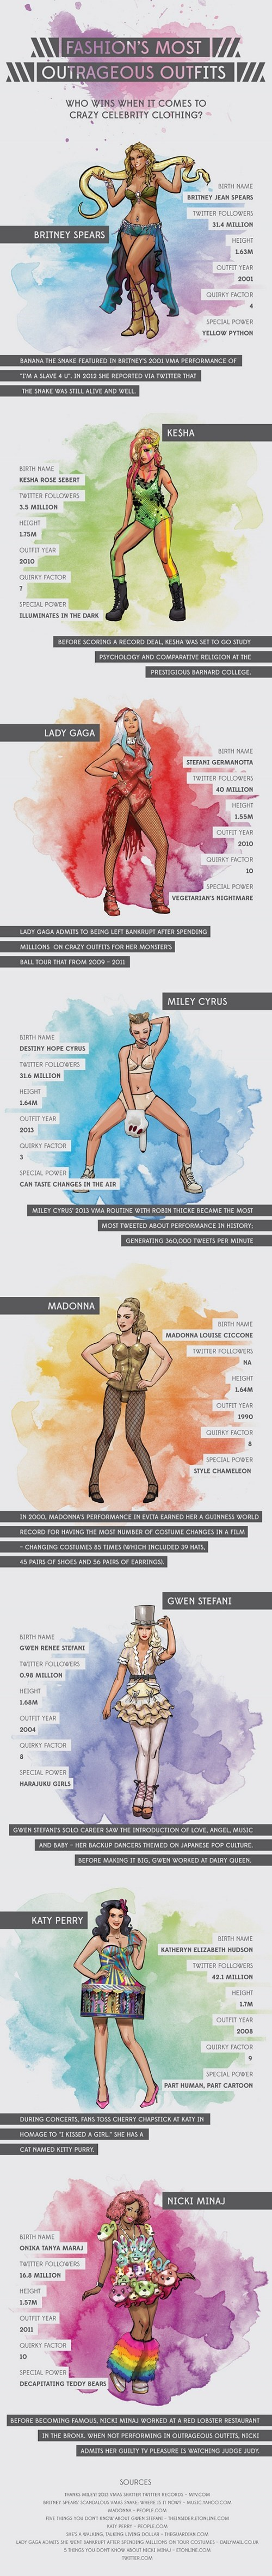 Music,fashion,infographic,celeb